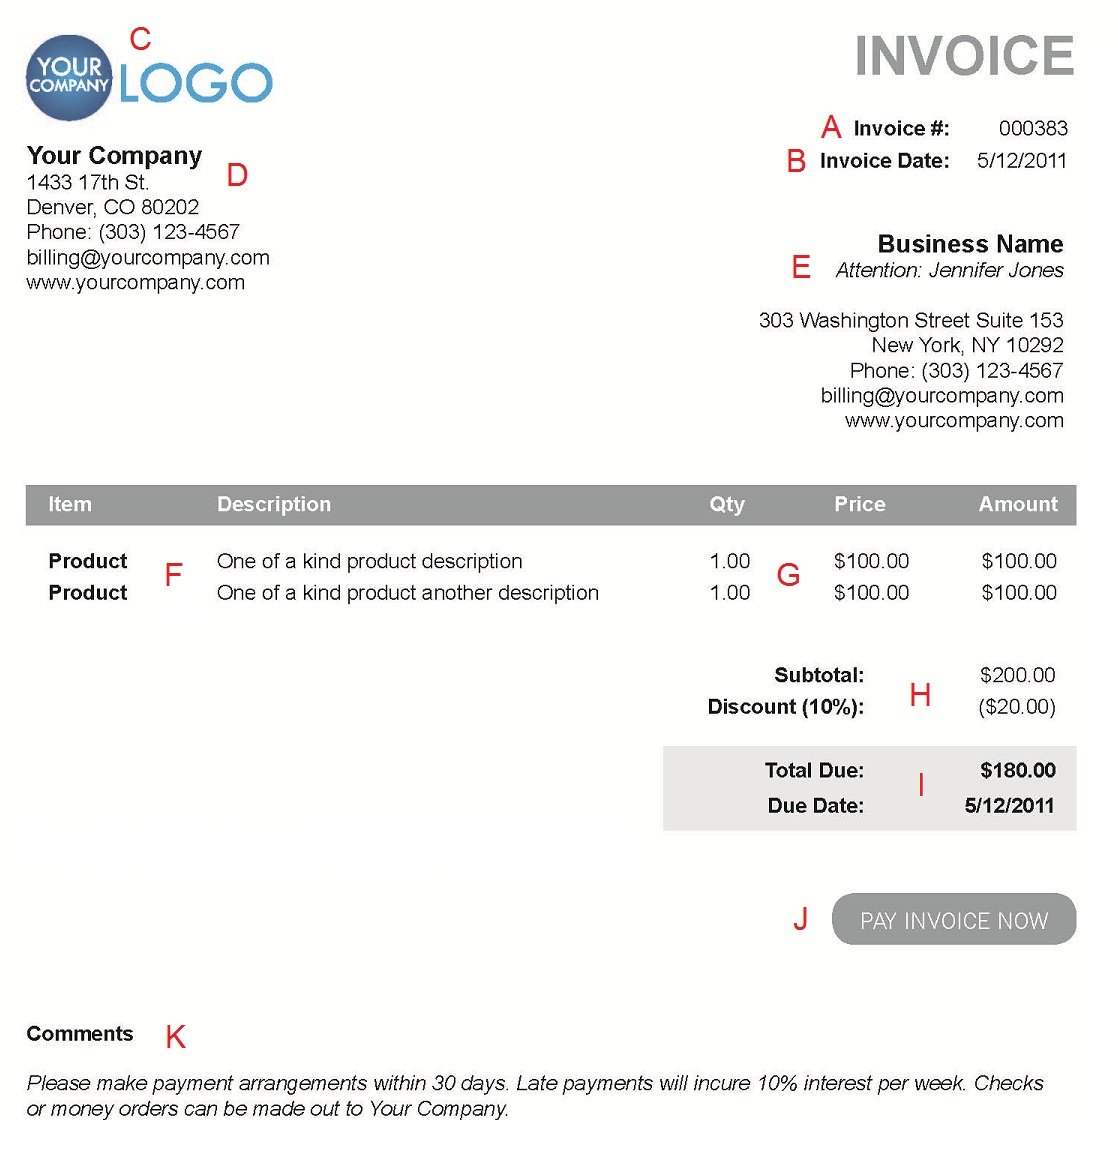 Ultrablogus  Winning The  Different Sections Of An Electronic Payment Invoice With Luxury A  With Divine Receipt Rent Also Receipt Of Sale Form In Addition Receipt Scanning Software Mac And Book Of Receipts As Well As Rent Payment Receipt Template Word Additionally Passport Renewal Receipt From Paysimplecom With Ultrablogus  Luxury The  Different Sections Of An Electronic Payment Invoice With Divine A  And Winning Receipt Rent Also Receipt Of Sale Form In Addition Receipt Scanning Software Mac From Paysimplecom